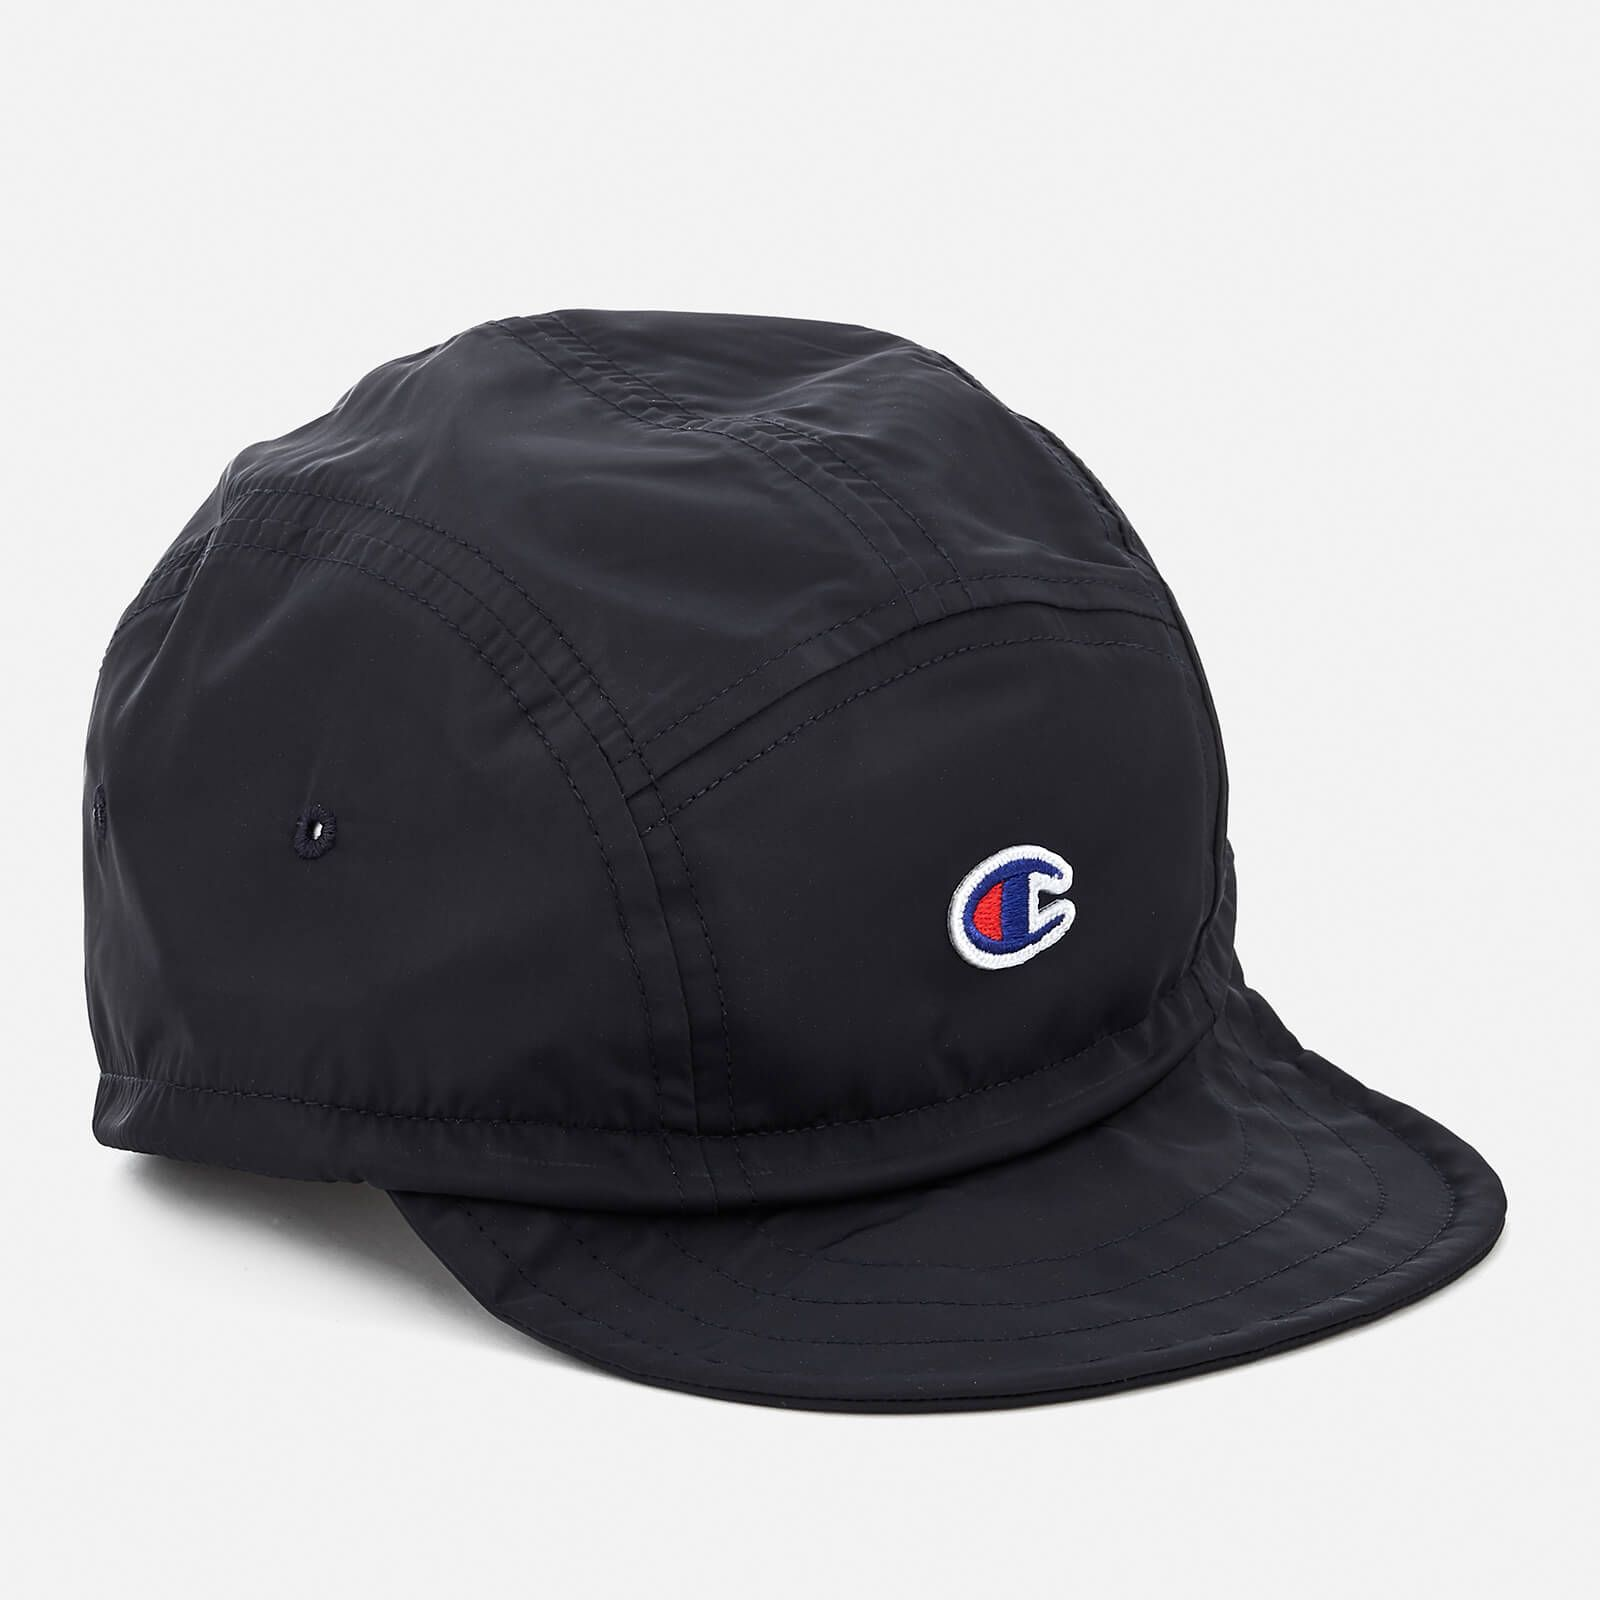 47b3b047f42 Champion X Beams Men s Package Cap - Navy - Free UK Delivery over £50